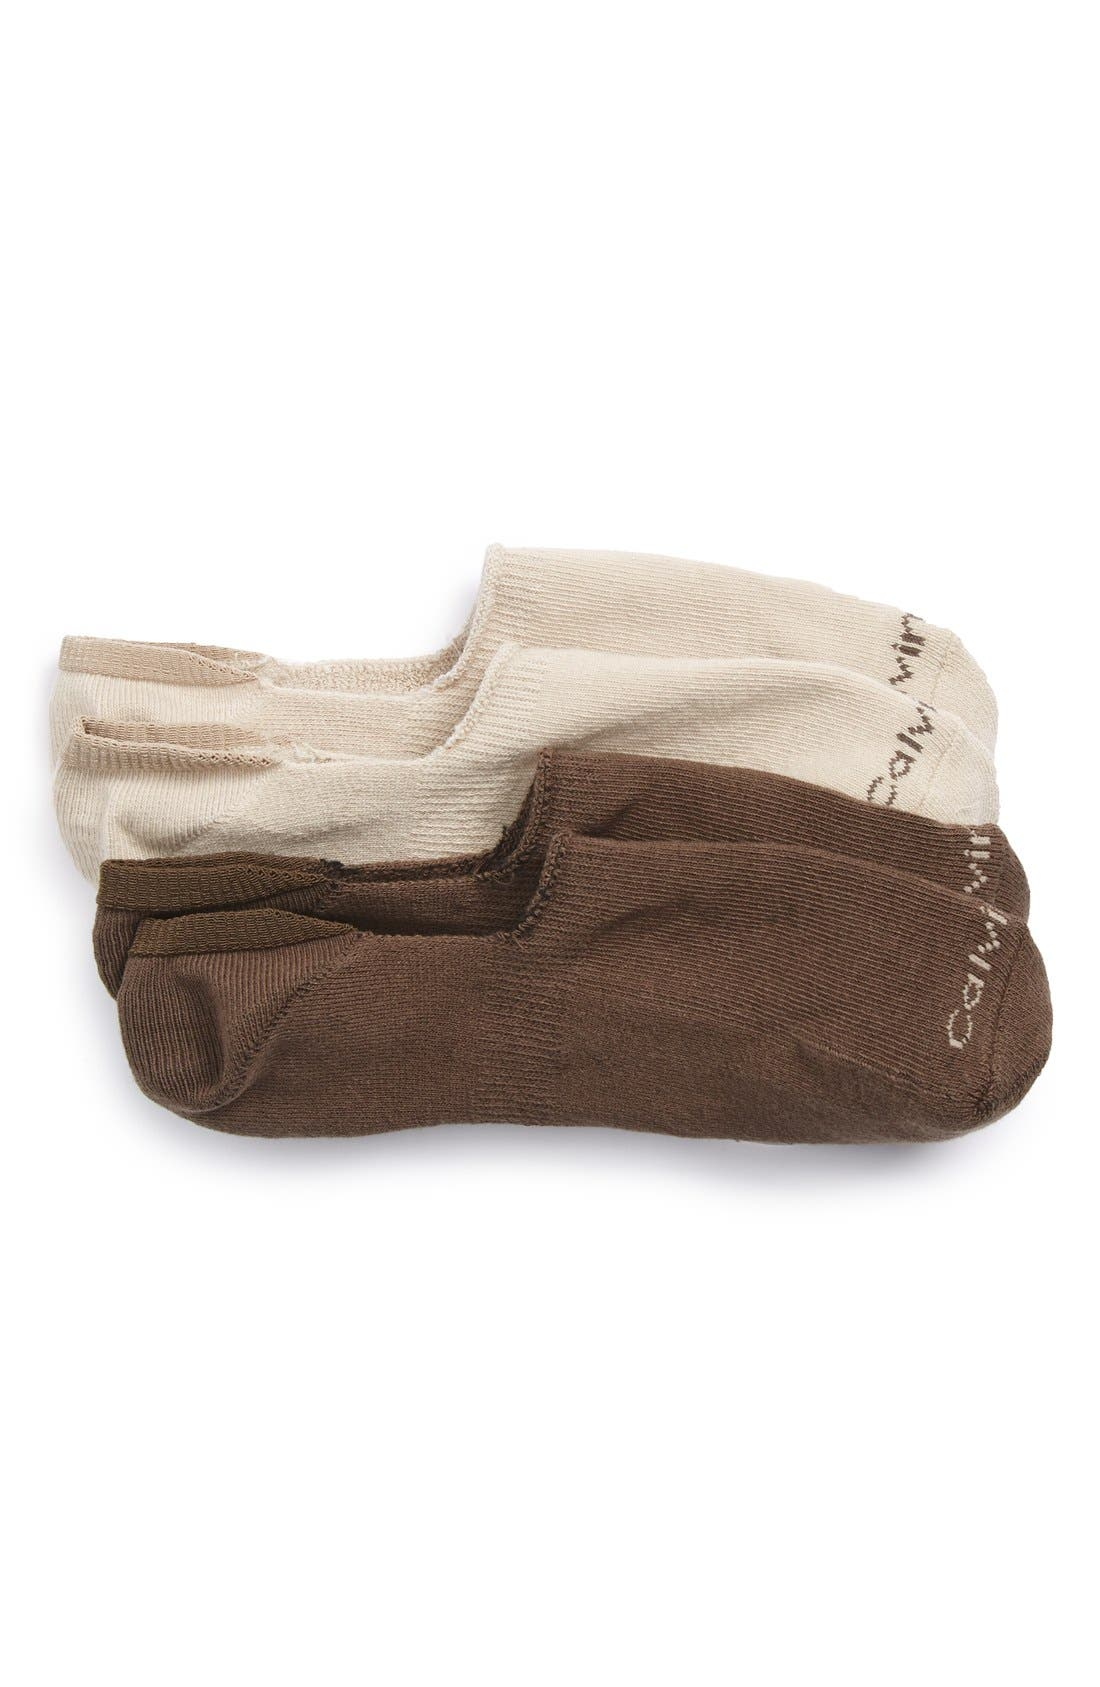 2-Pack Performance No-Show Socks,                         Main,                         color, Wood Heather